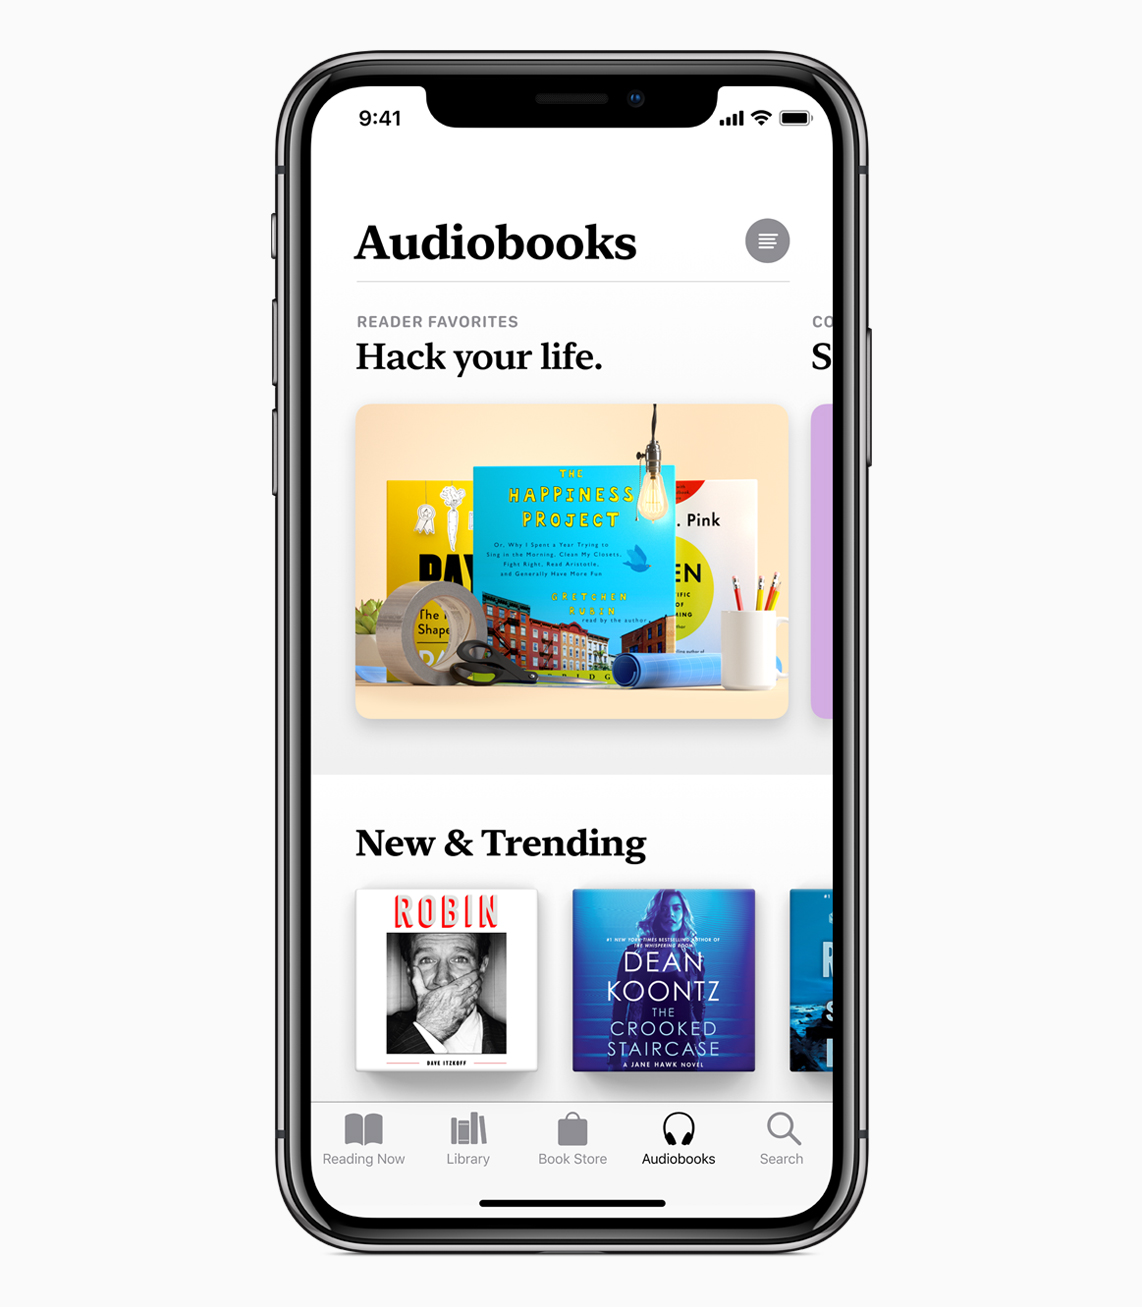 Apple Books App in AudioBooks Tab on iPhone X